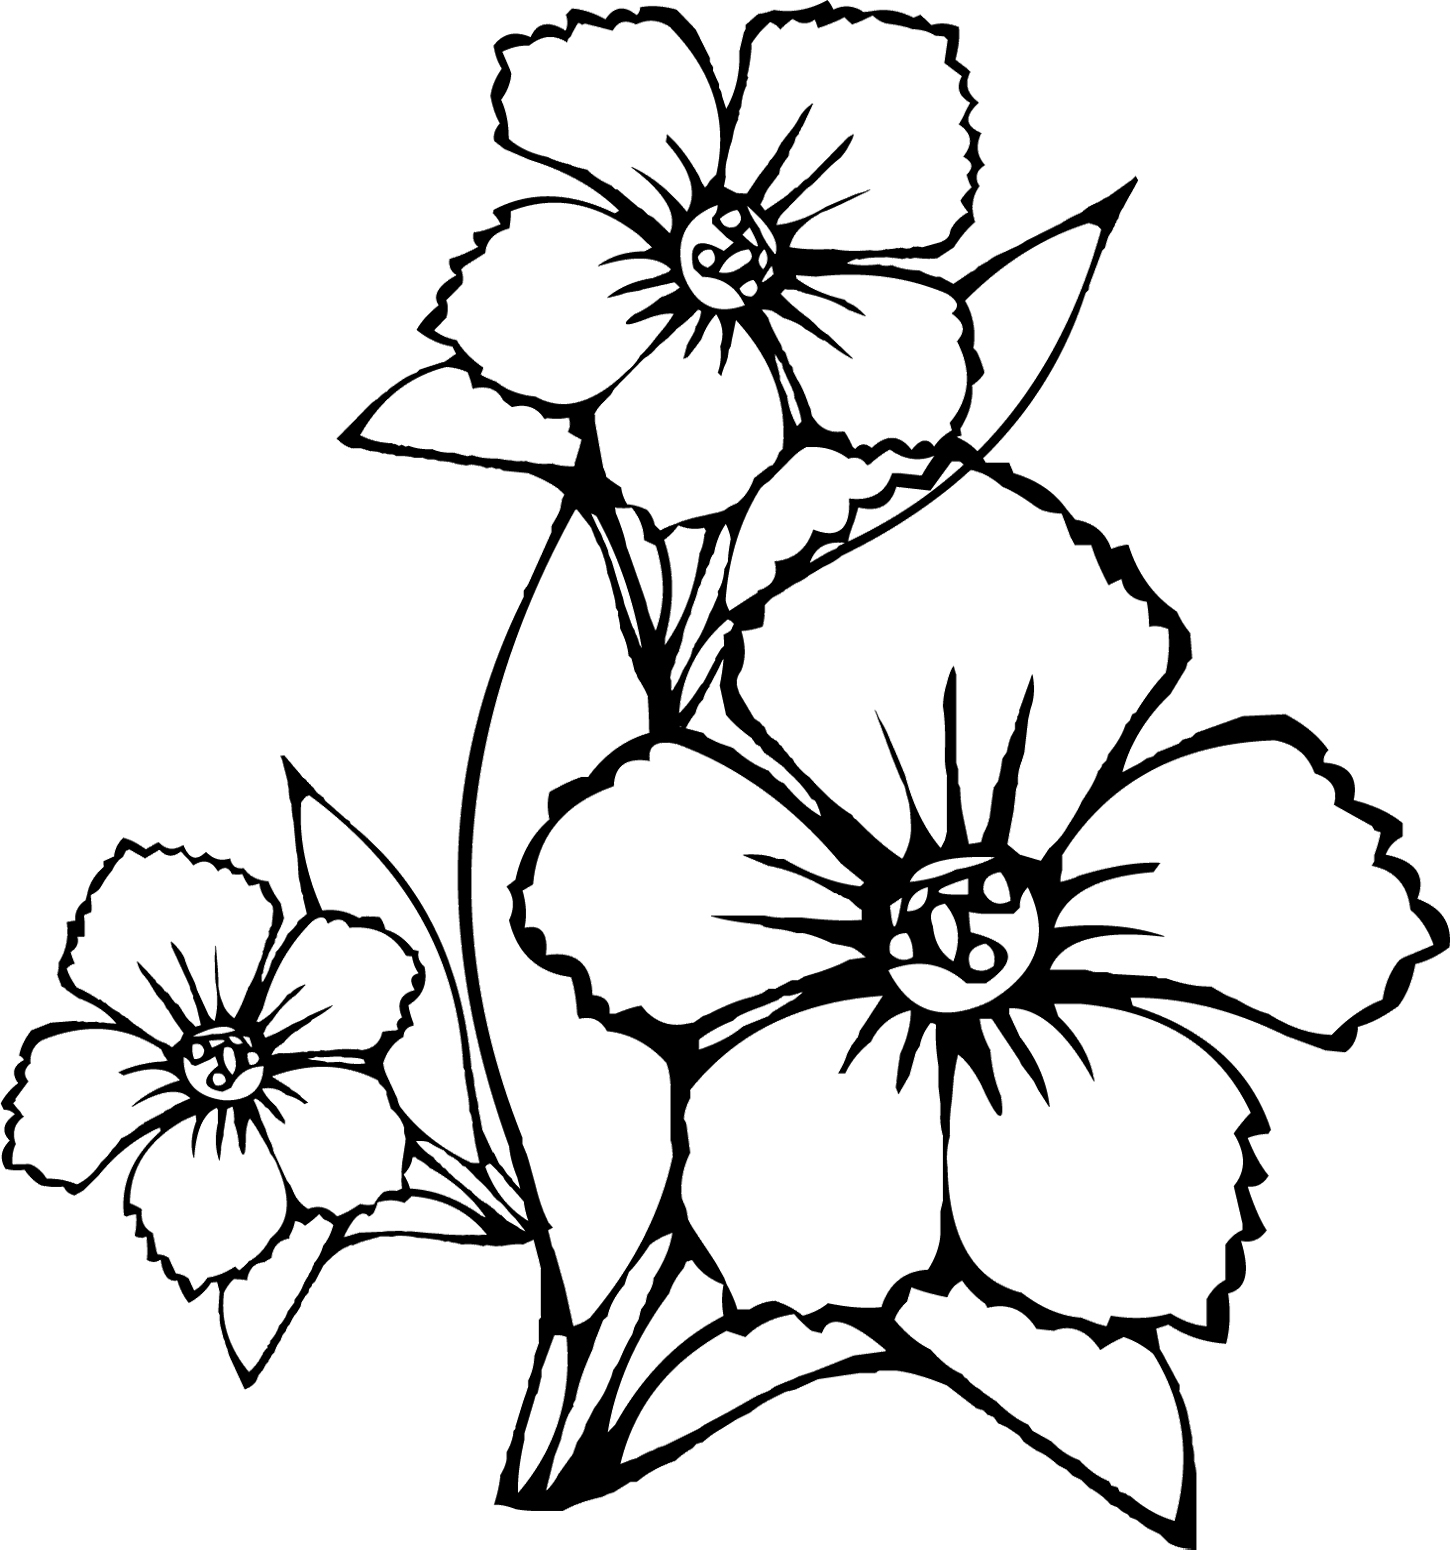 1450x1550 Coloring Pages Charming Draw Easy Flowers Spring